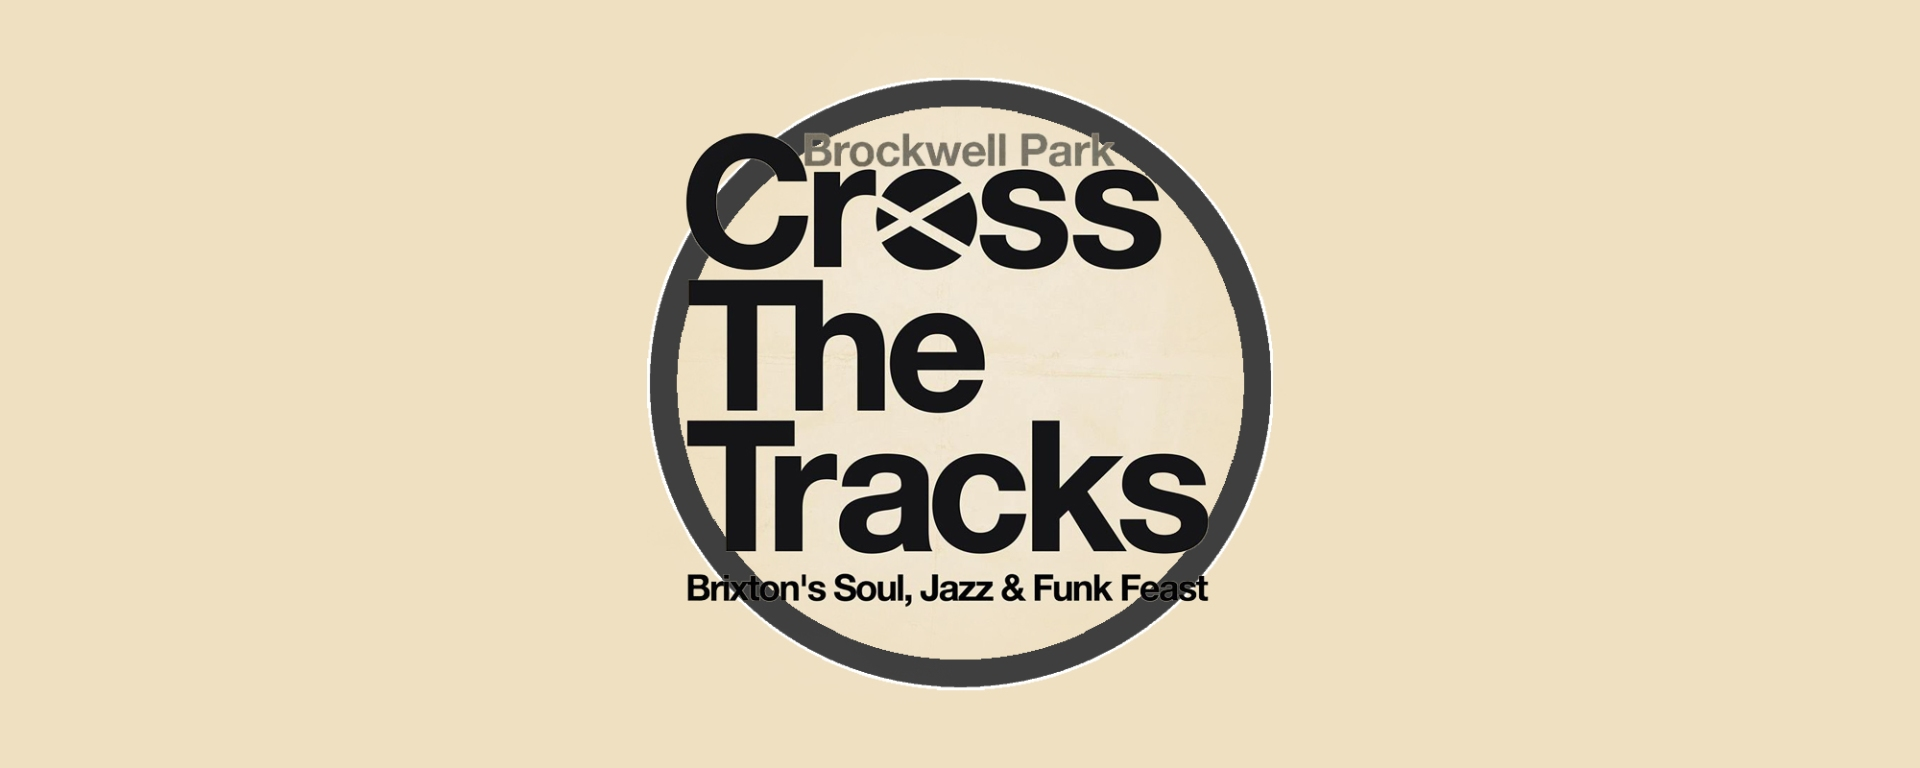 Cross The Tracks Music Festival at Brockwell Park 2019